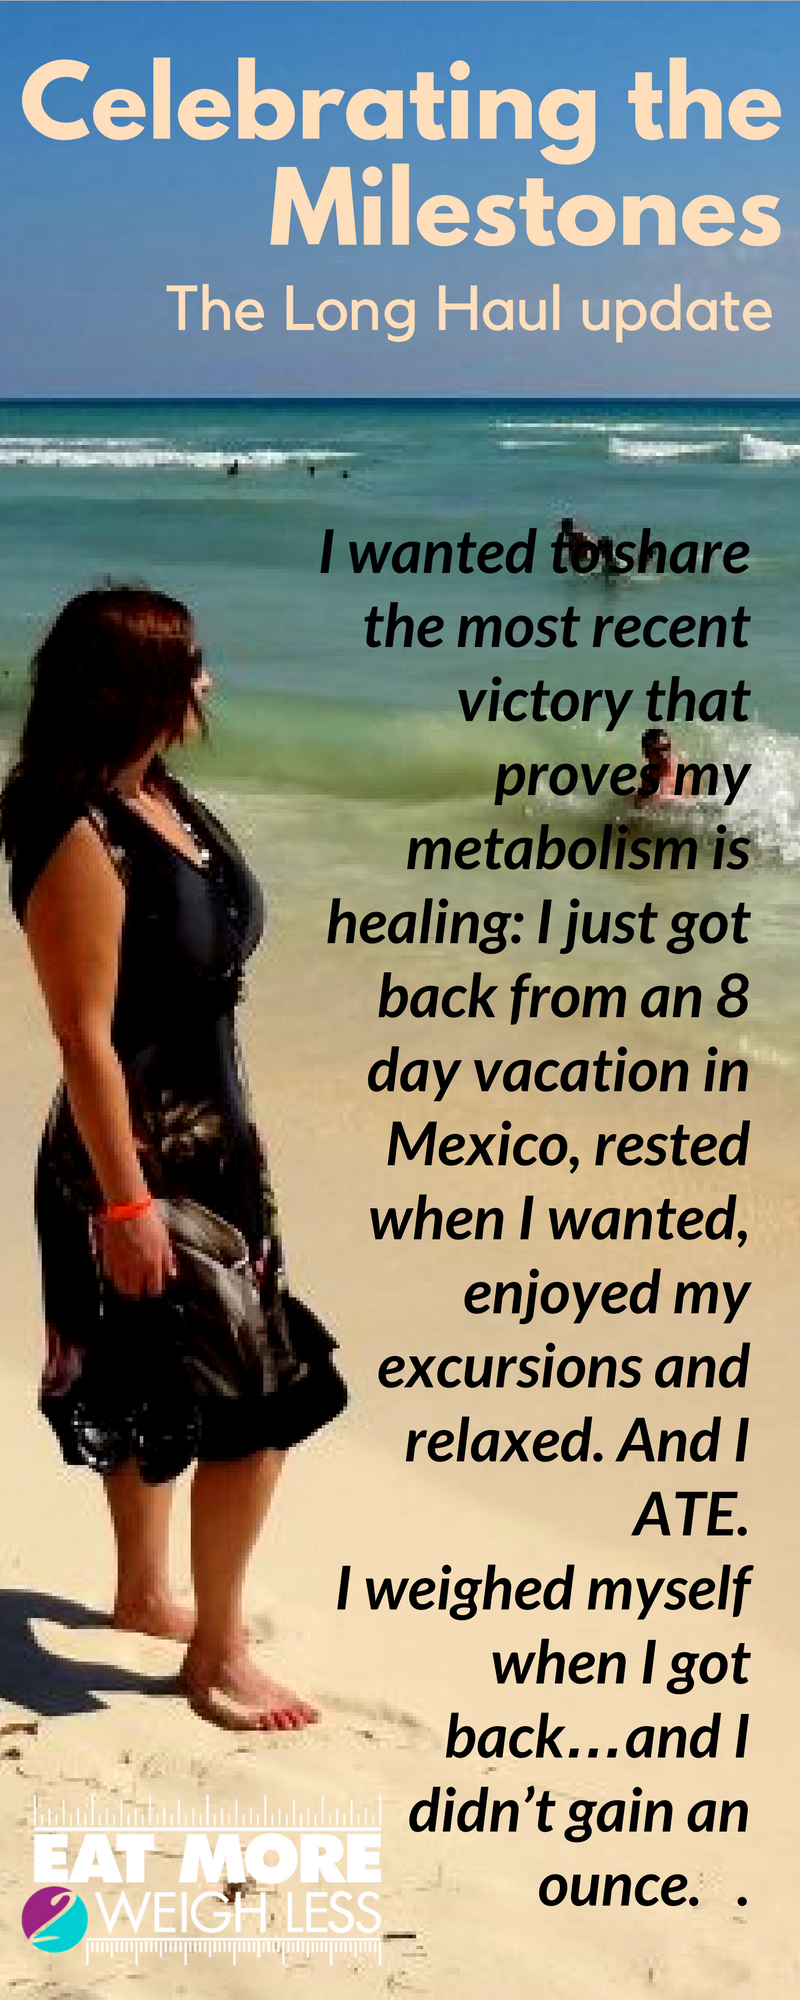 If you are like me, coming from a severe diet/exercise history, take your time and refeed your body. Watch for the milestones. You may need months of healing before you will see success at cut (which sucks-believe me, I know, but it may be necessary)…Just remember to celebrate the NSV milestones along the way because those are just as important and just as awesome. #metabolismreset #crushingthedietmentality